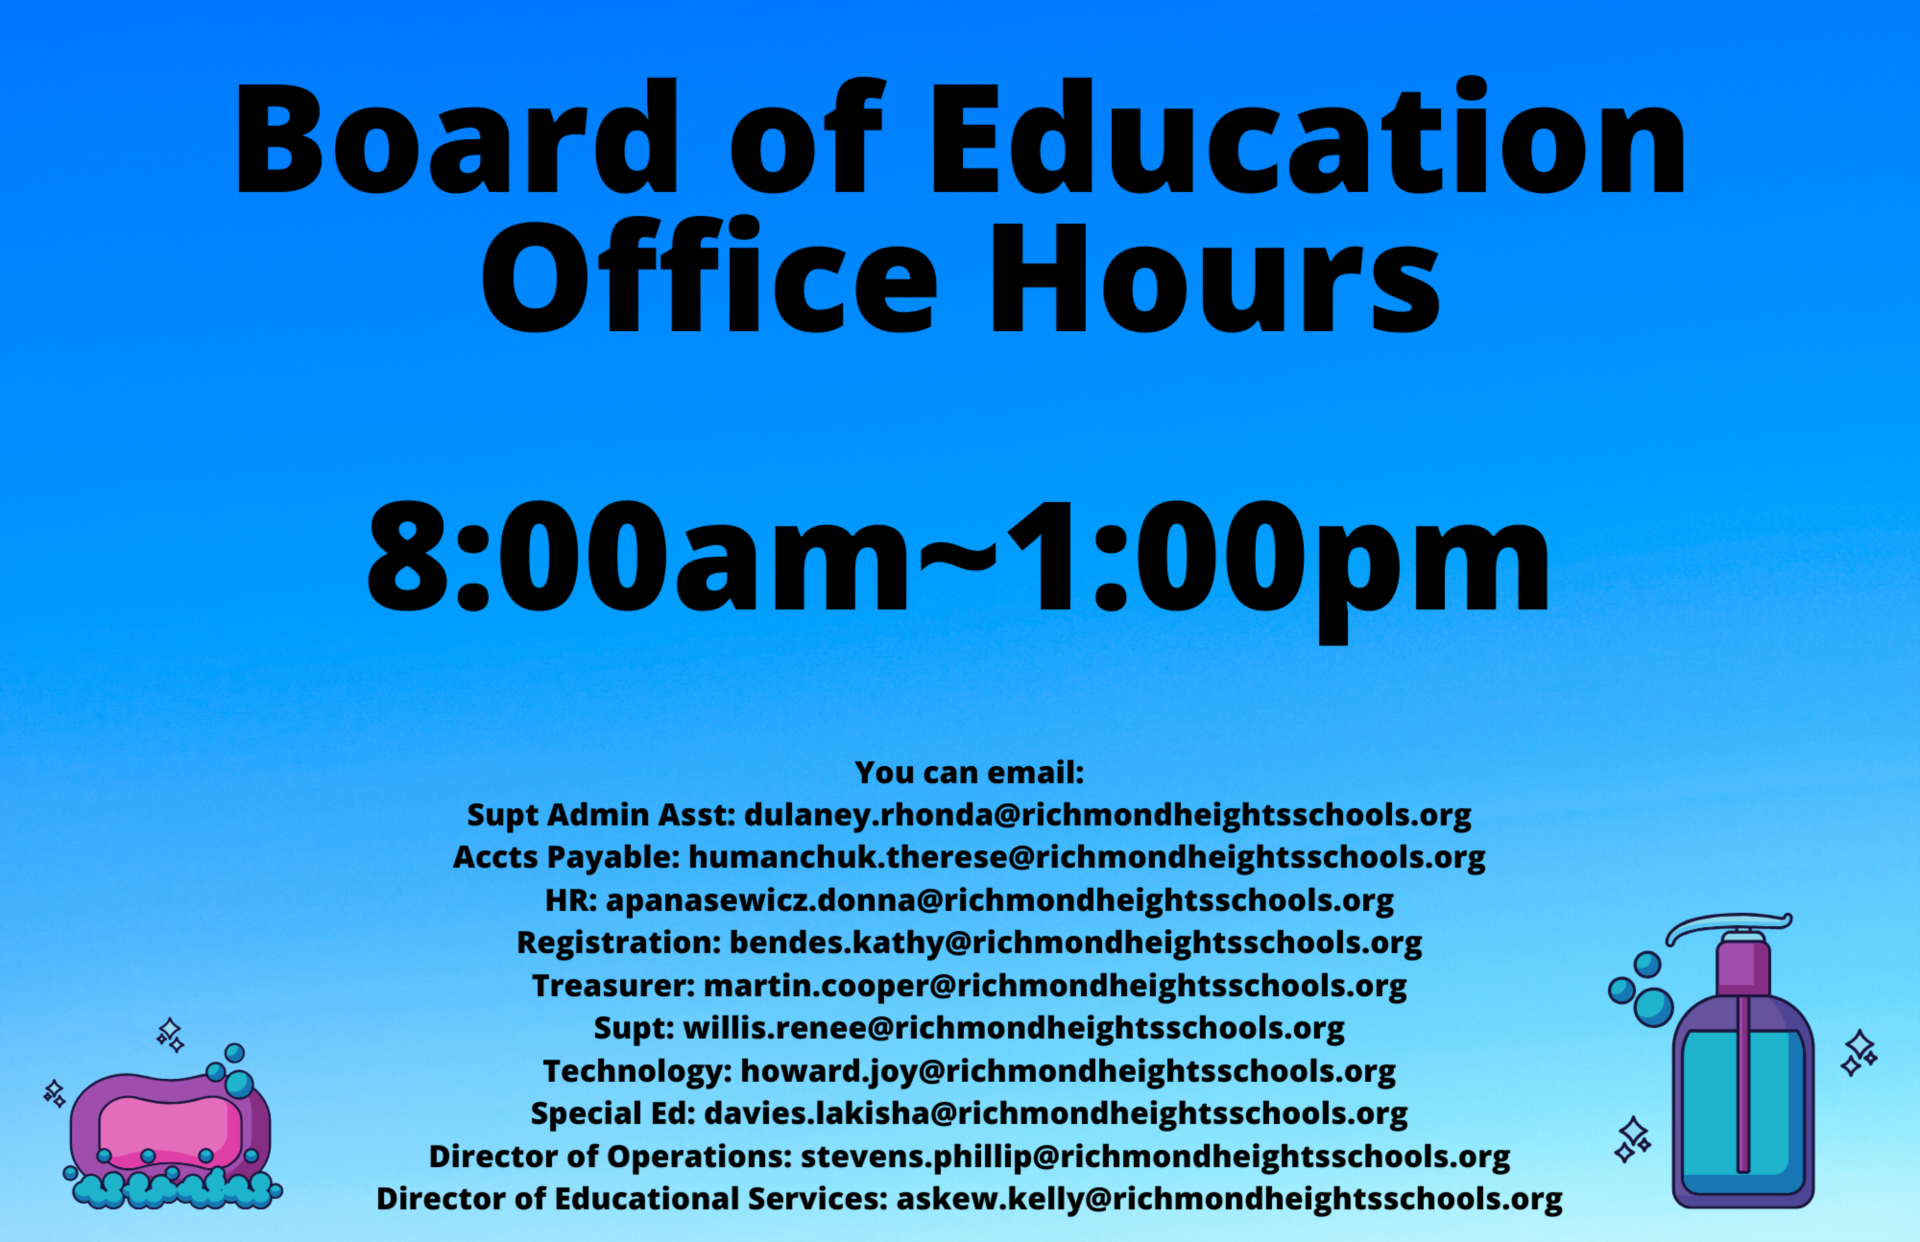 blue rectangle which reads Board of Education Office hours 8:00am-1:00pm with emails